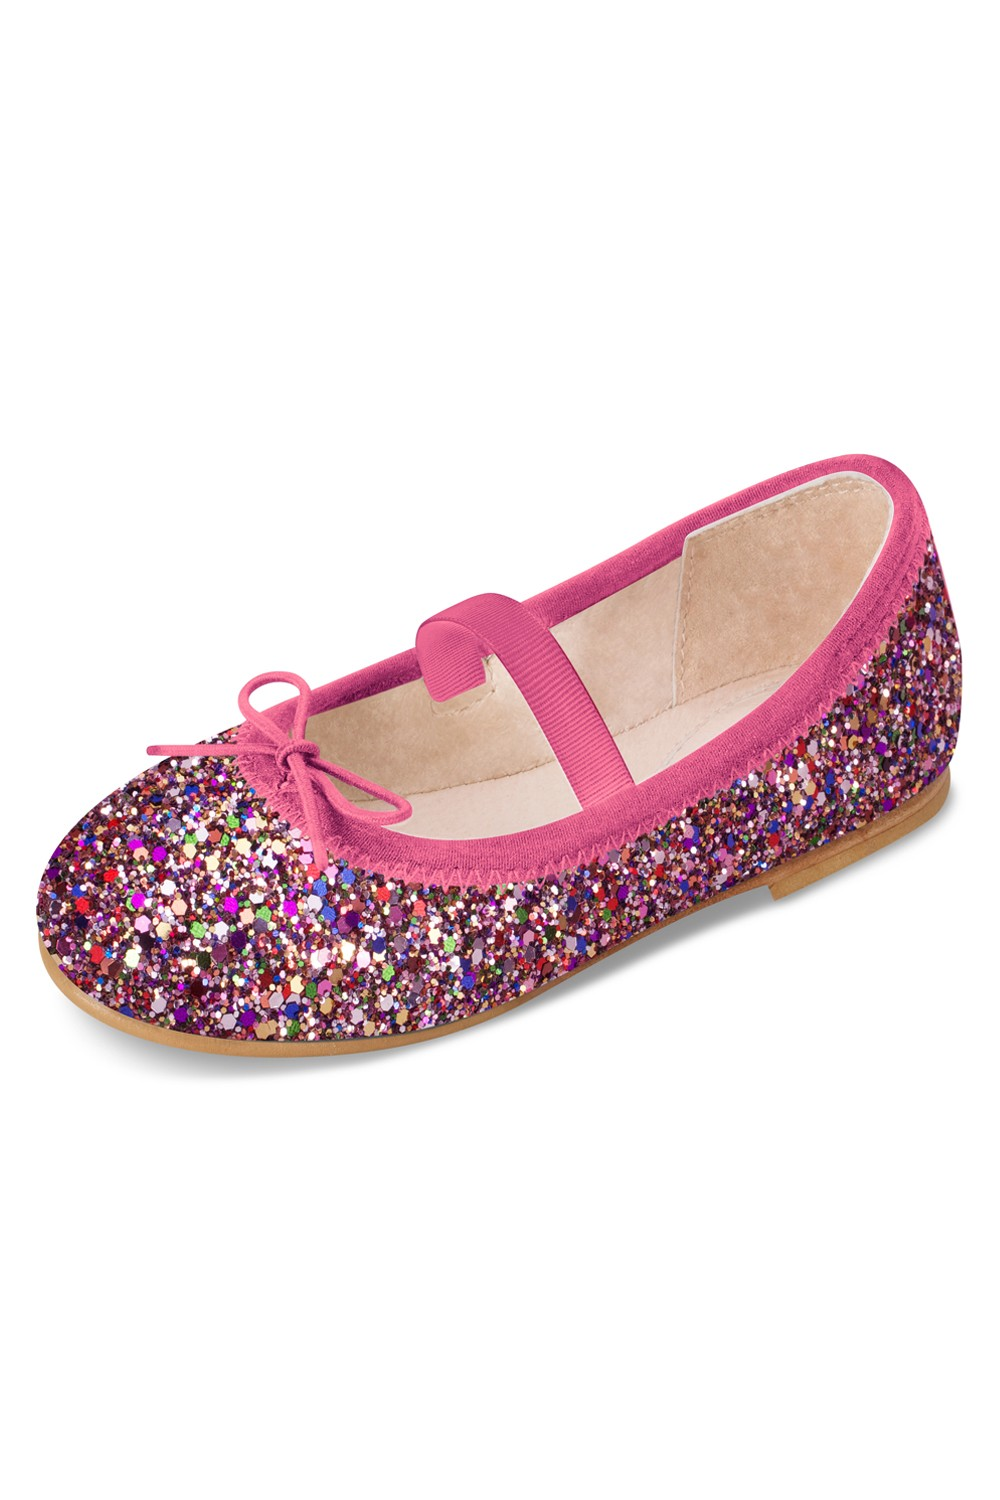 Sparkle - Kleinkind Toddlers Fashion Shoes